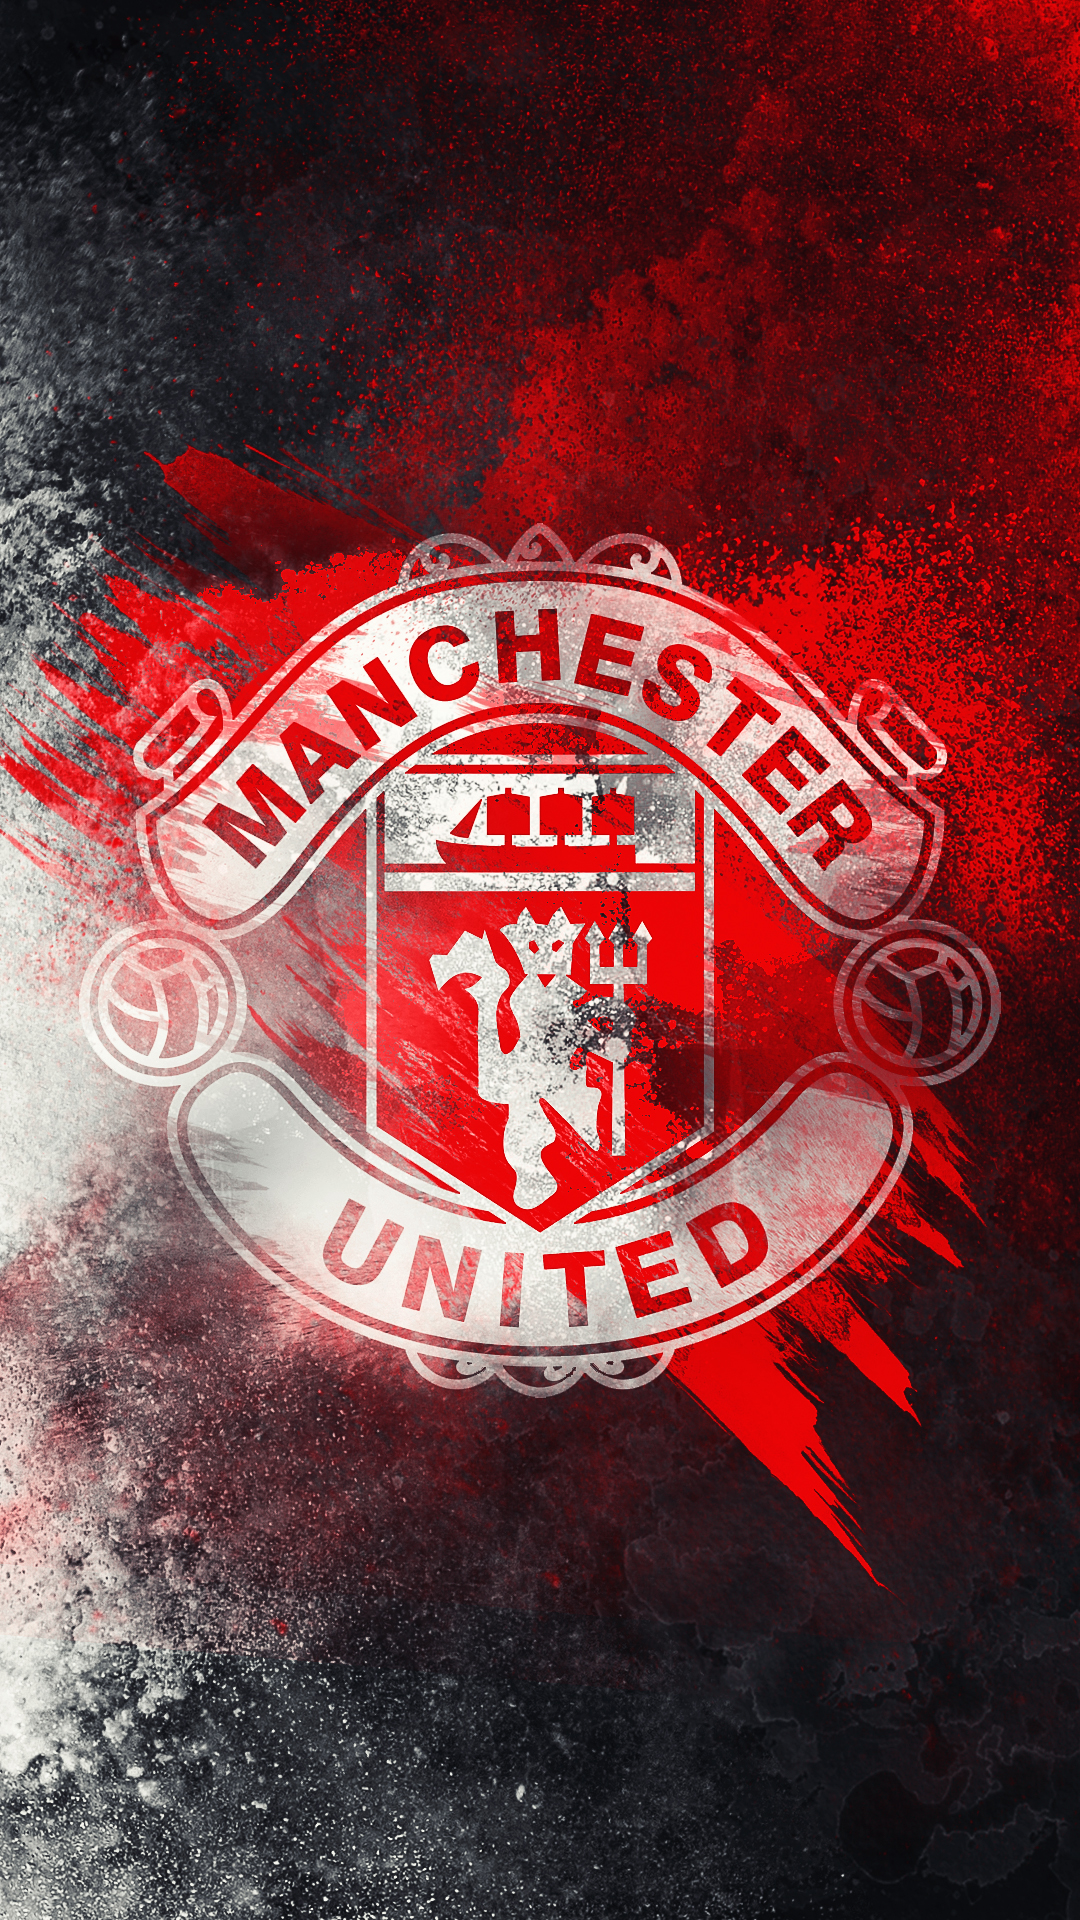 Manchester united hd logo wallpaper by kerimov23 on deviantart manchester united hd logo wallpaper by kerimov23 voltagebd Choice Image